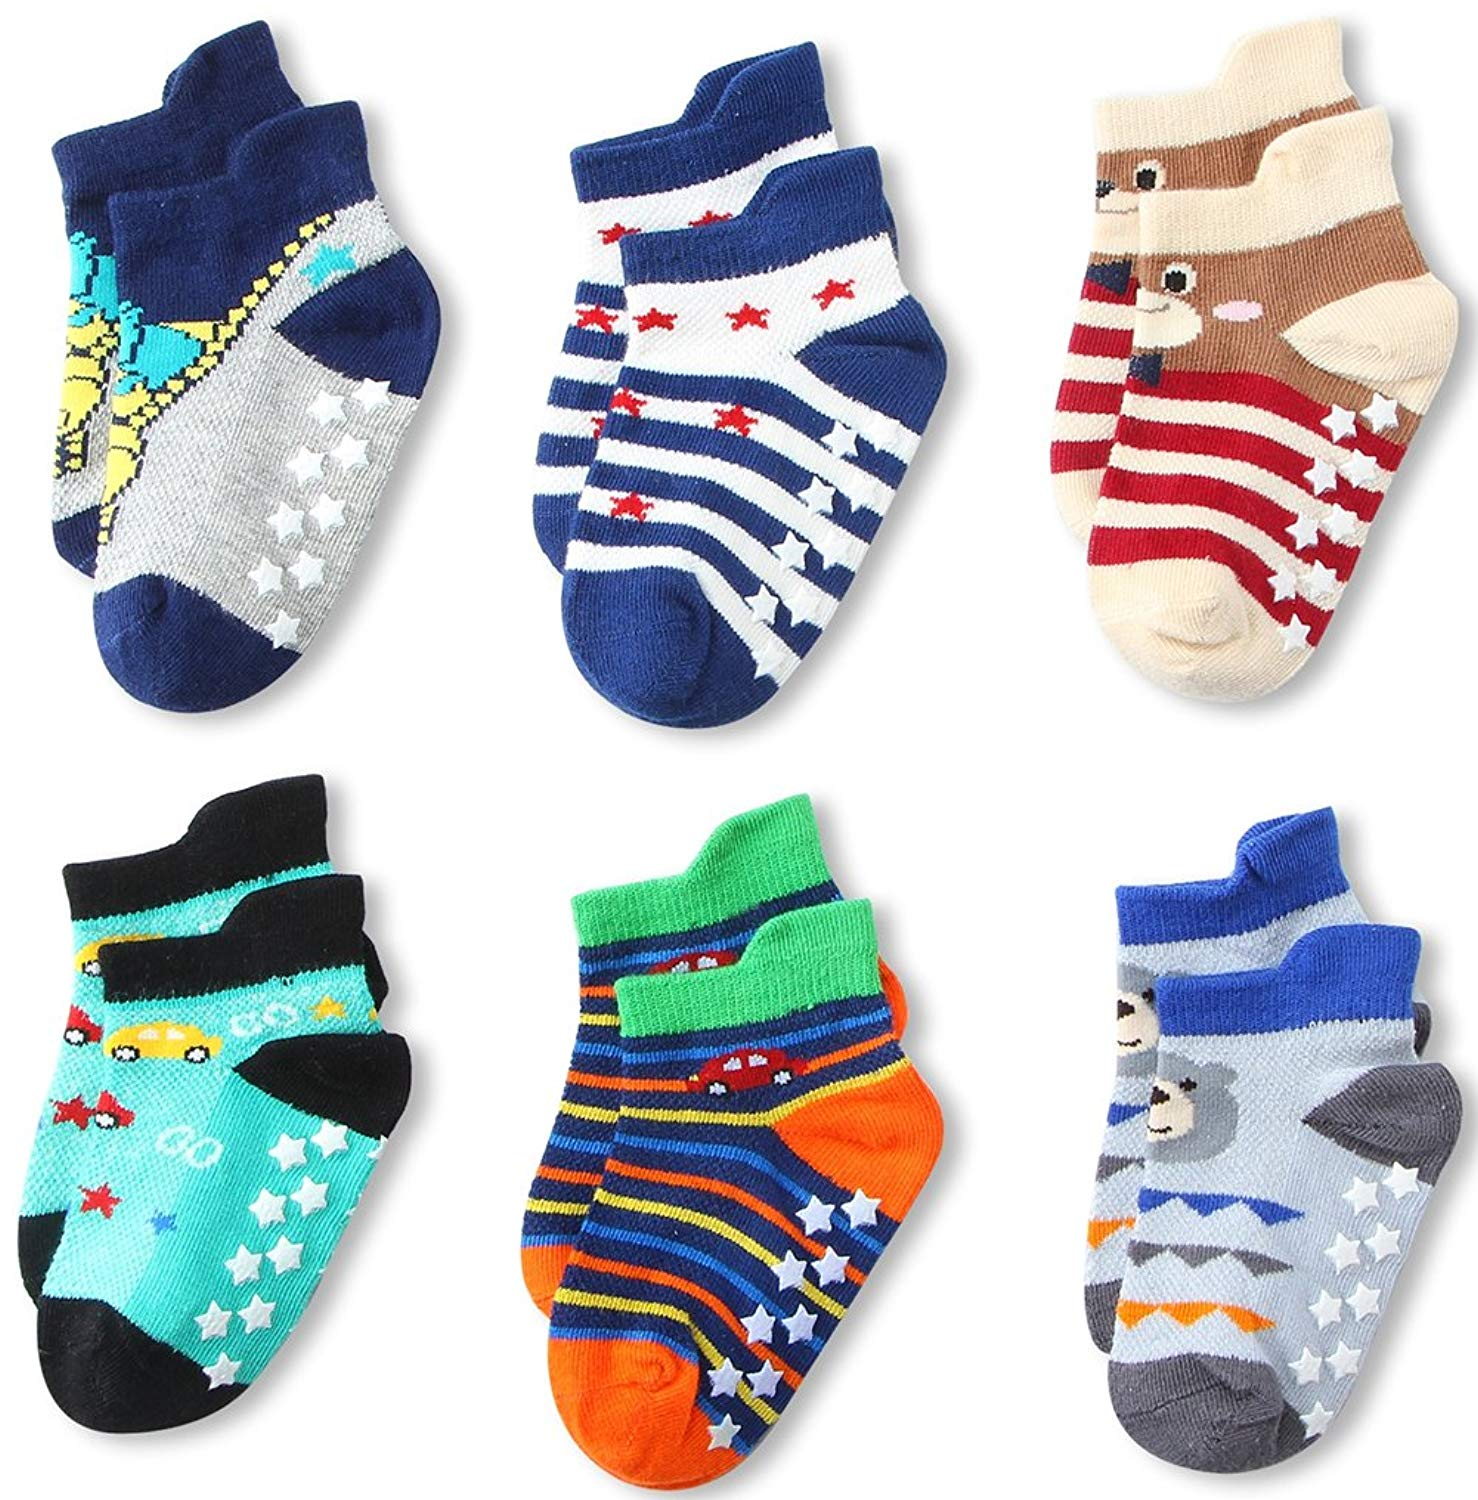 6 Pairs Toddler Boy Non Skid No Show Socks Low Cut with Grips, Baby Boys Anti-skid Slippers Ankle Socks